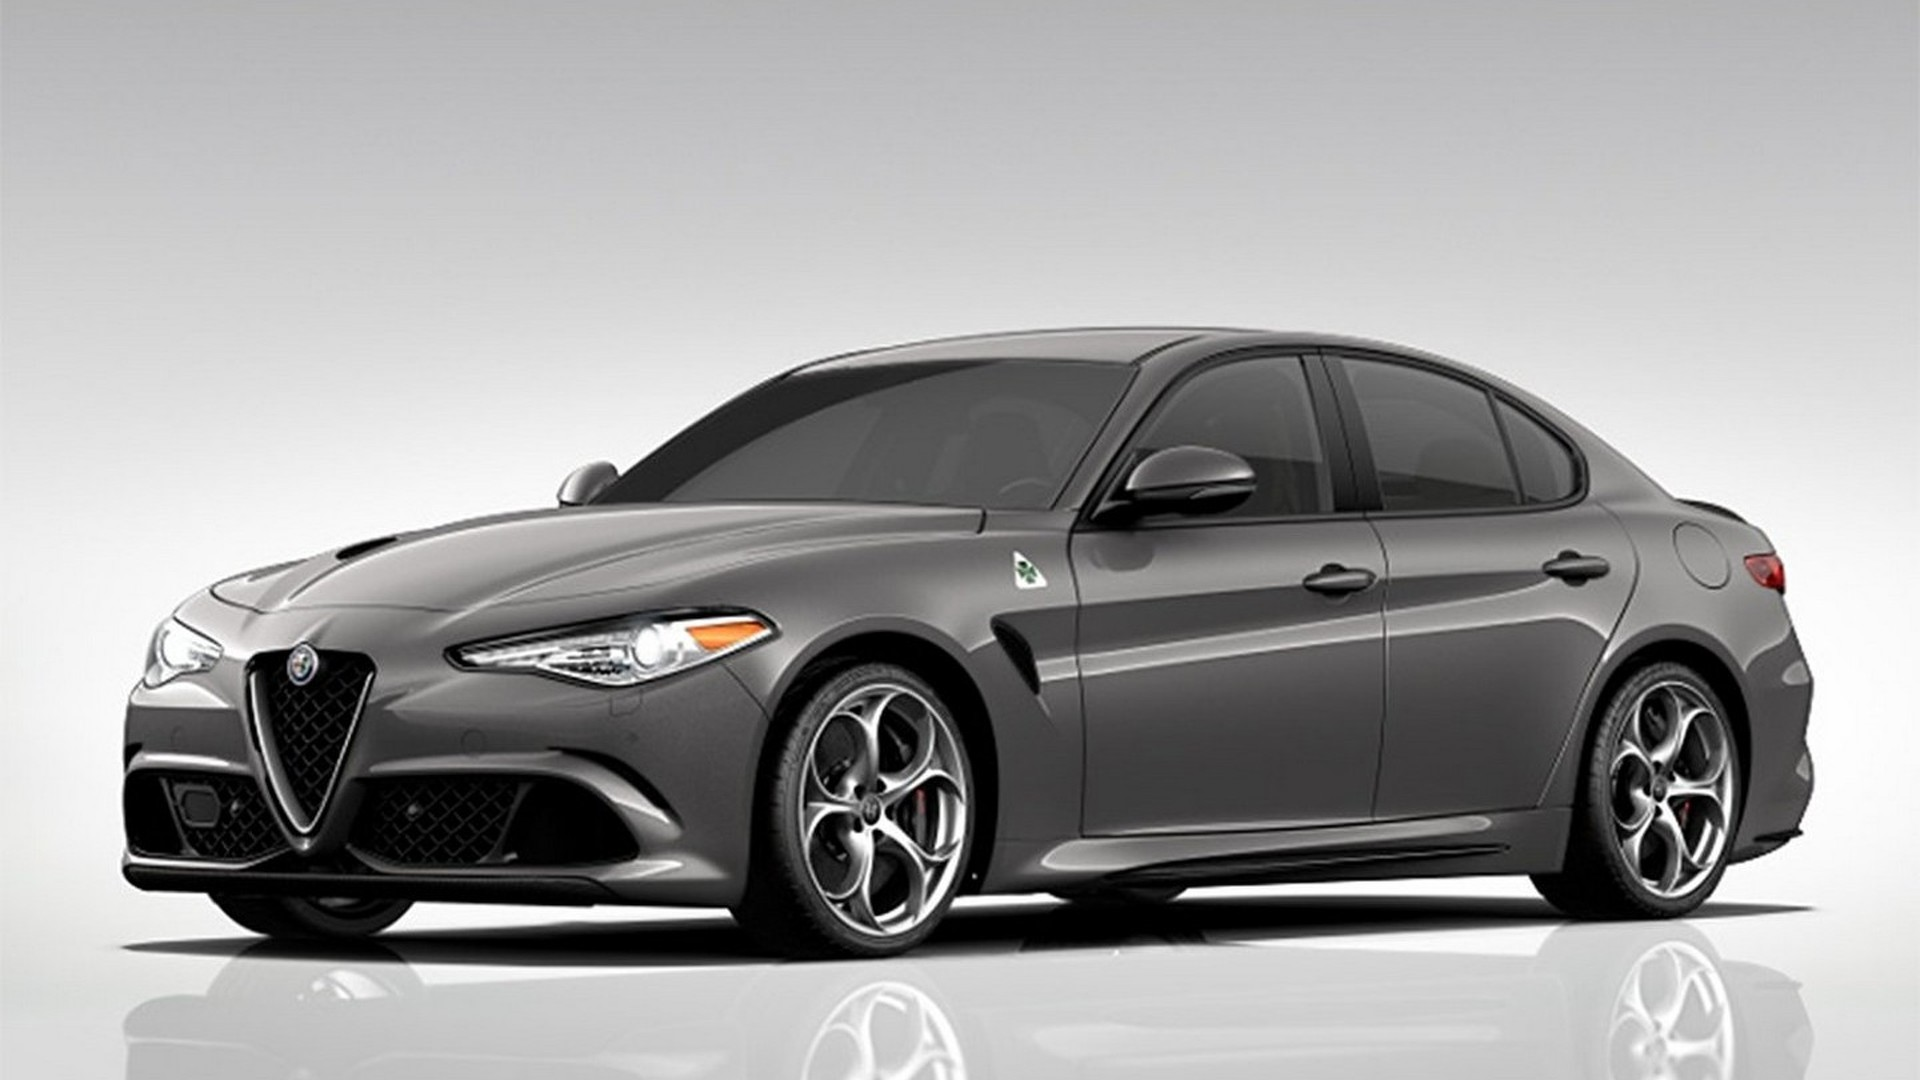 Mini Supercars For Sale >> Alfa Romeo USA fires up Giulia Quadrifoglio mini online configurator